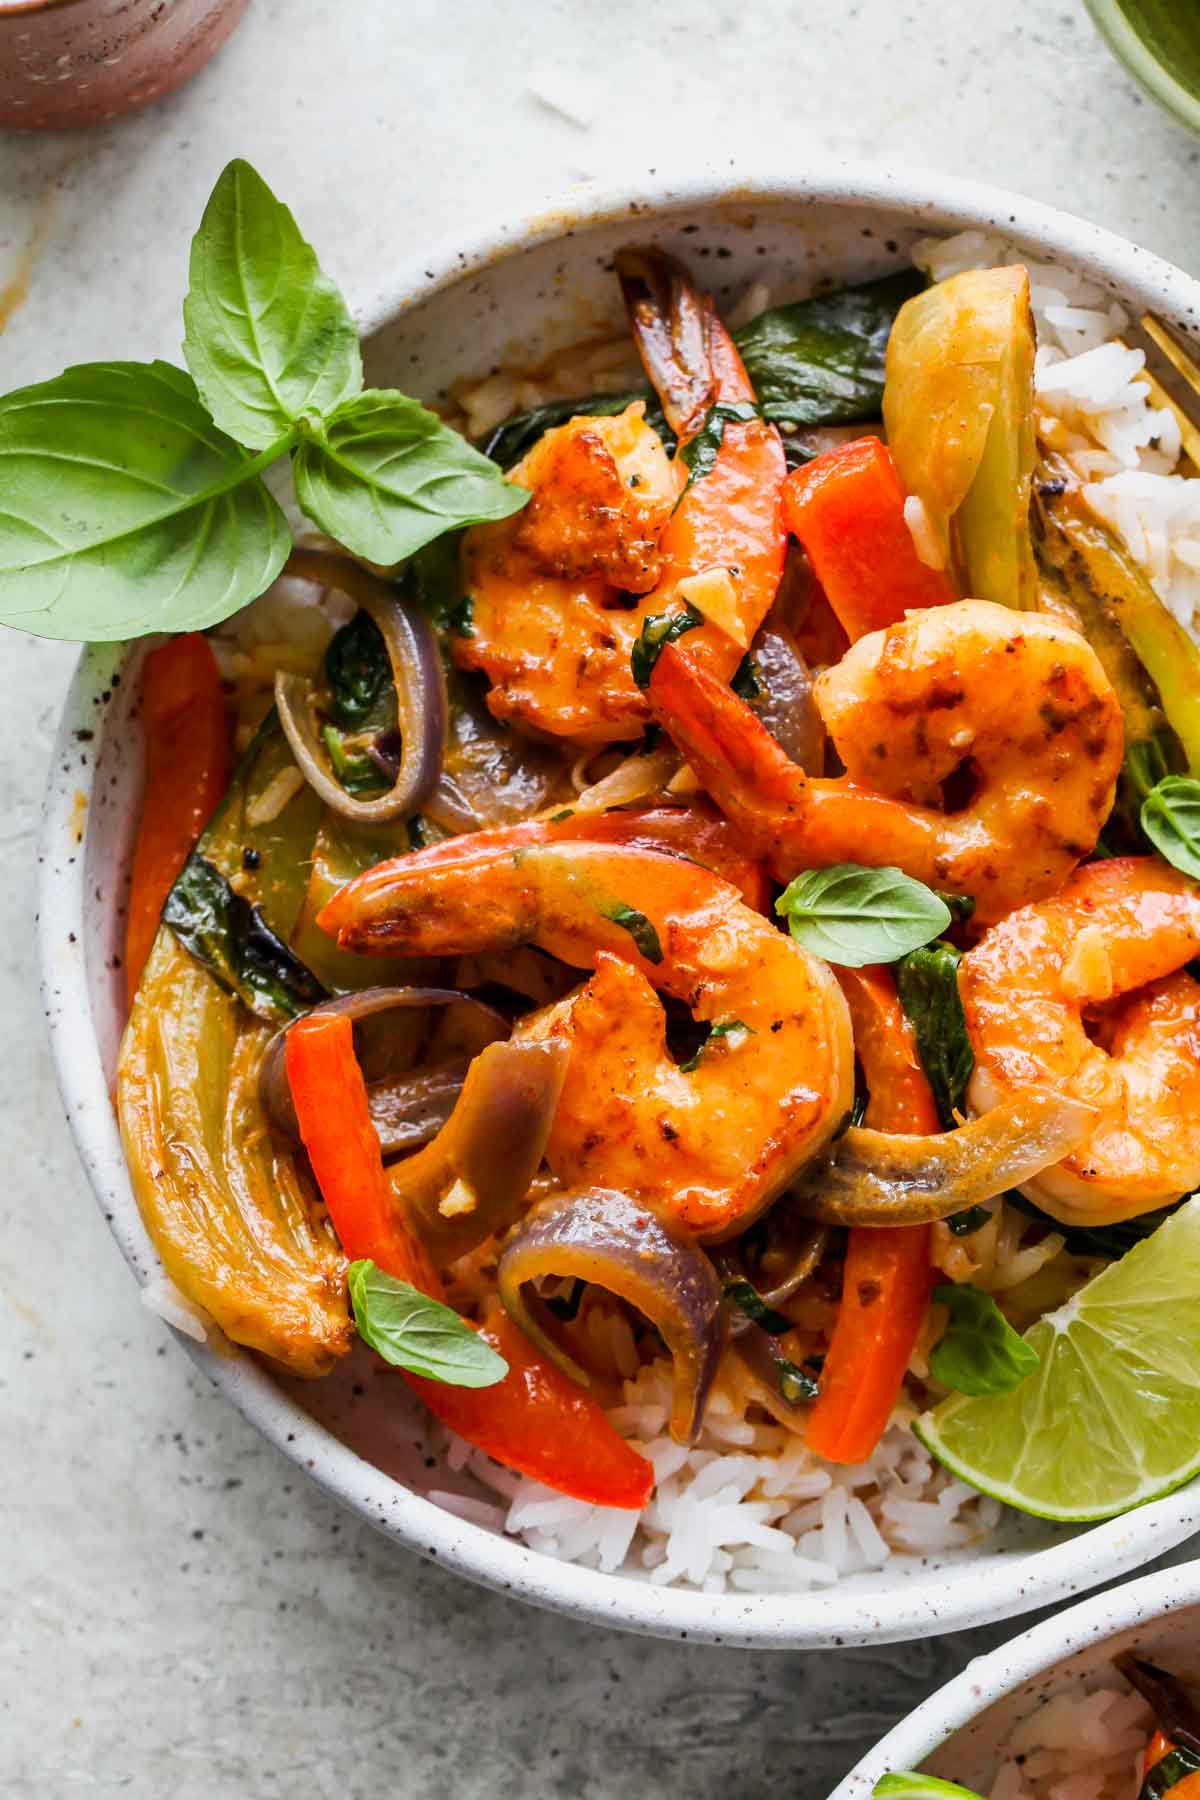 Pan-seared shrimp, peppers, and bok choy tossed in curry sauce and served over rice